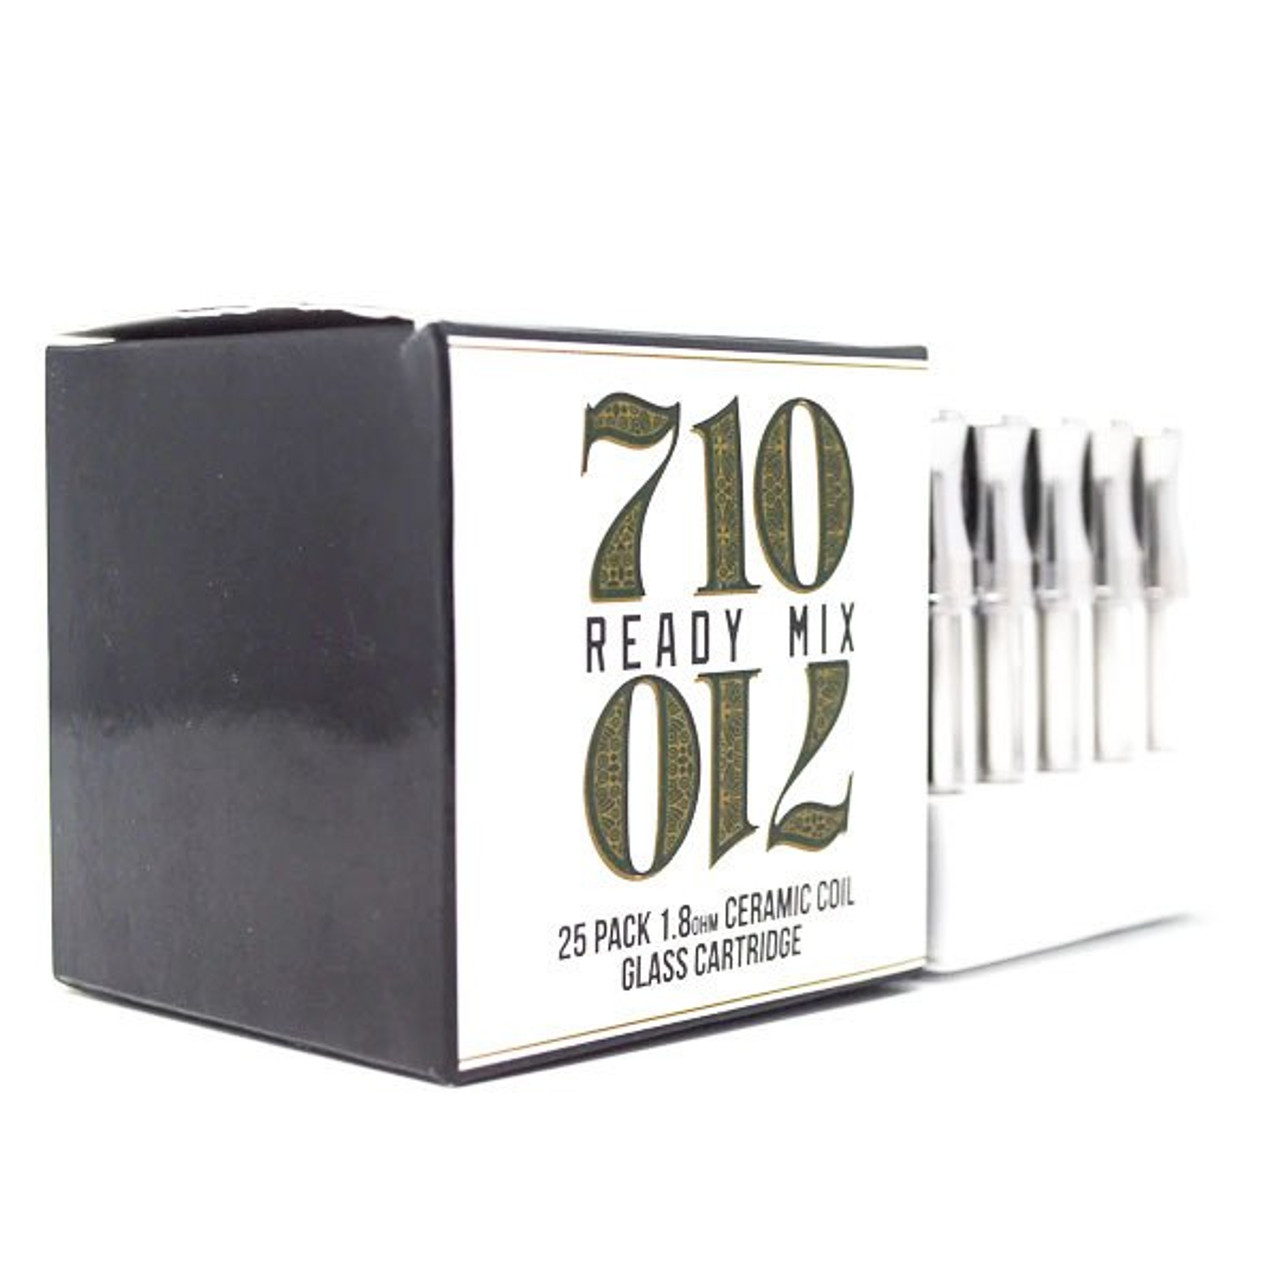 710 Ready Mix - G3 Glass Cartridge 0.5ml Ceramic 25pk